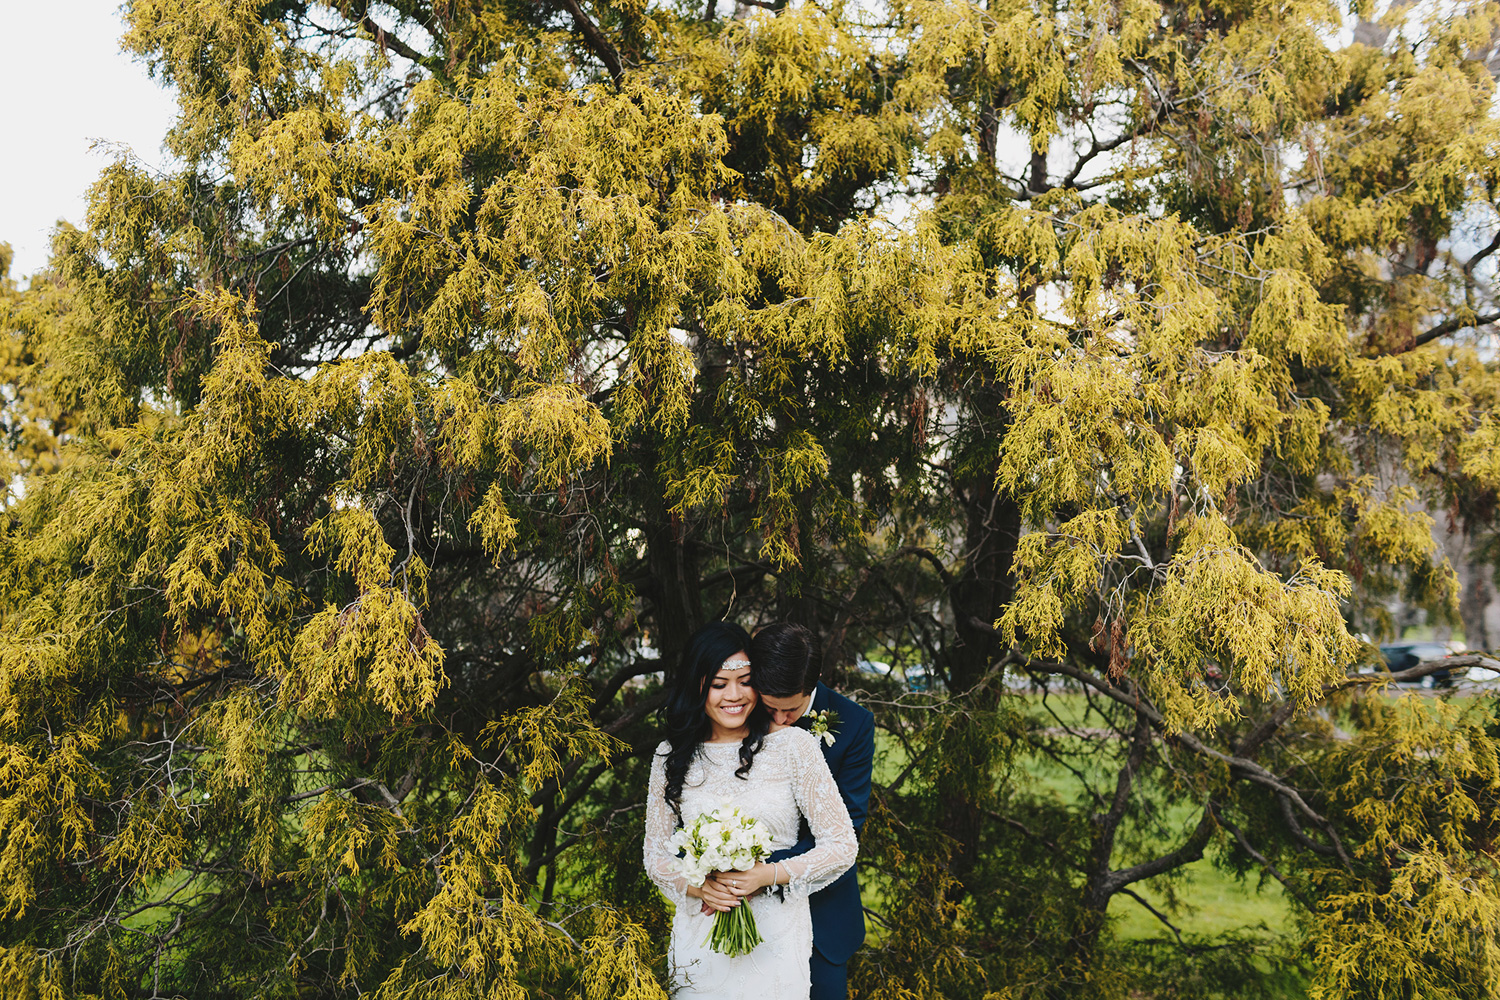 076-Sayher-&-Amelia-Melbourne-Wedding.jpg